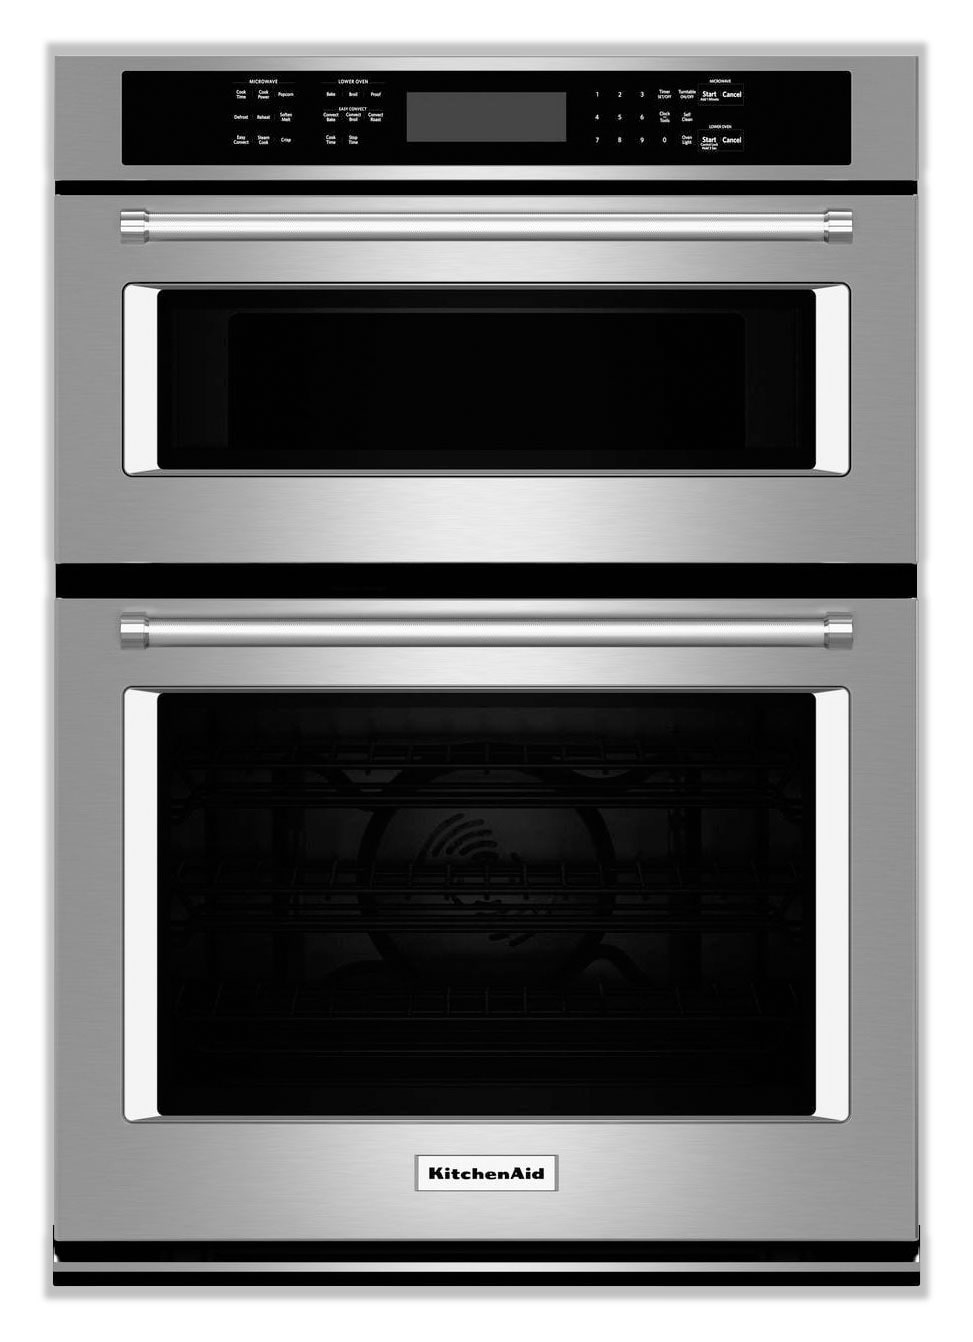 Microwave Oven Stainless Steel ~ Kitchenaid stainless steel wall oven cu ft w